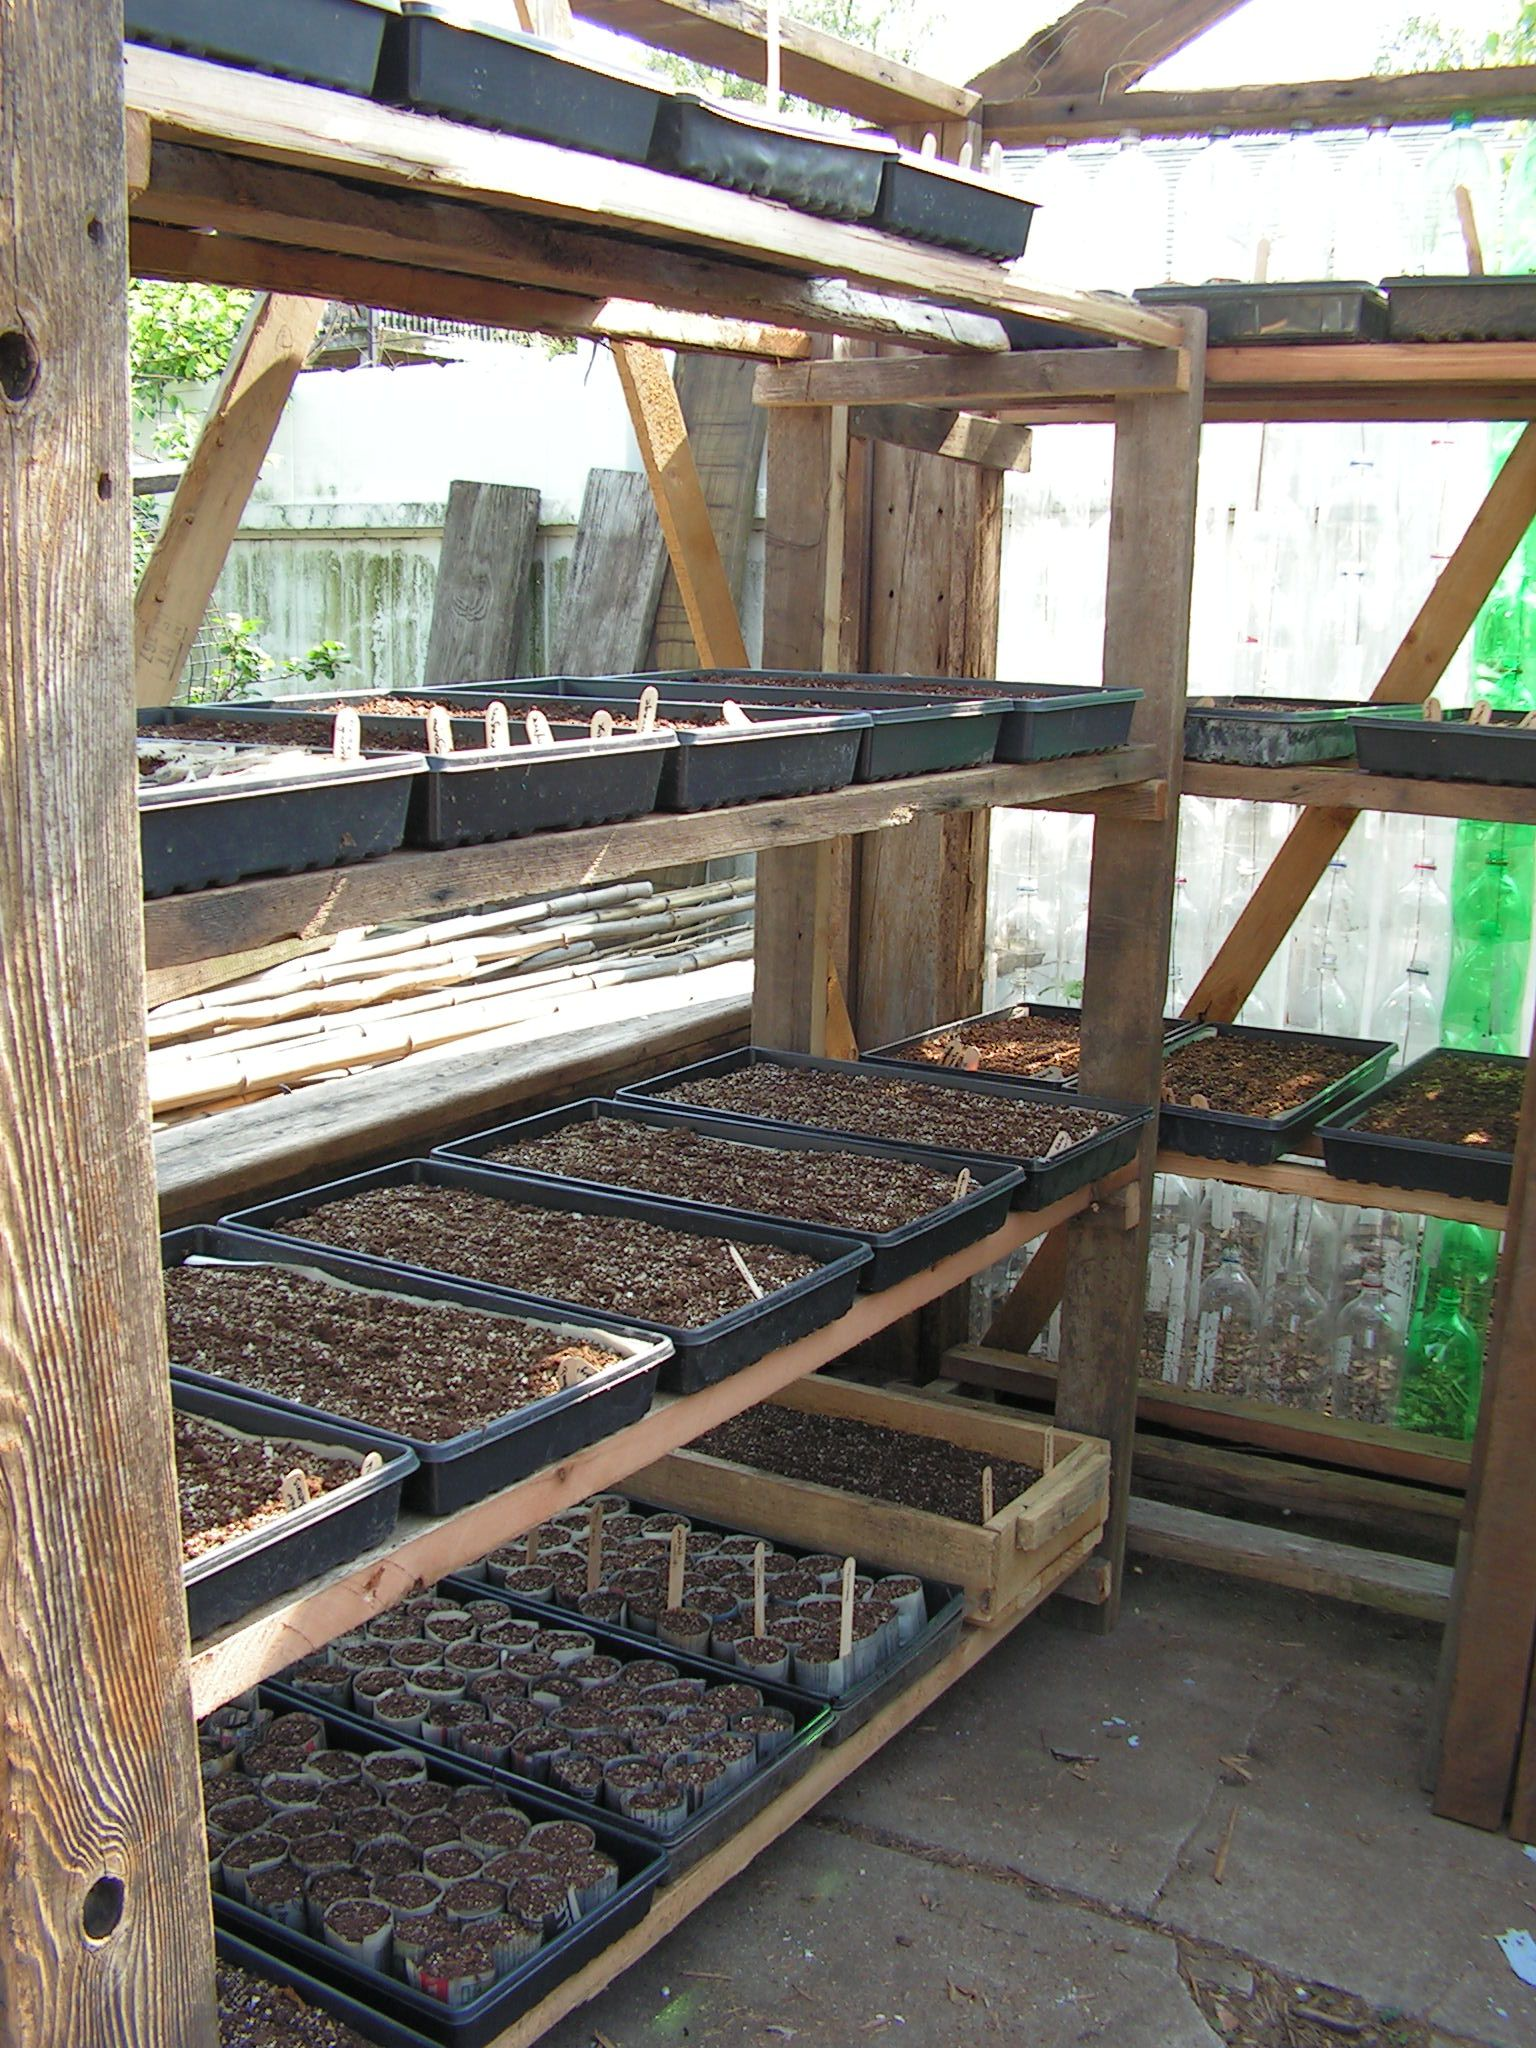 greenhouse shelving - google search | i'm in the greenhouse